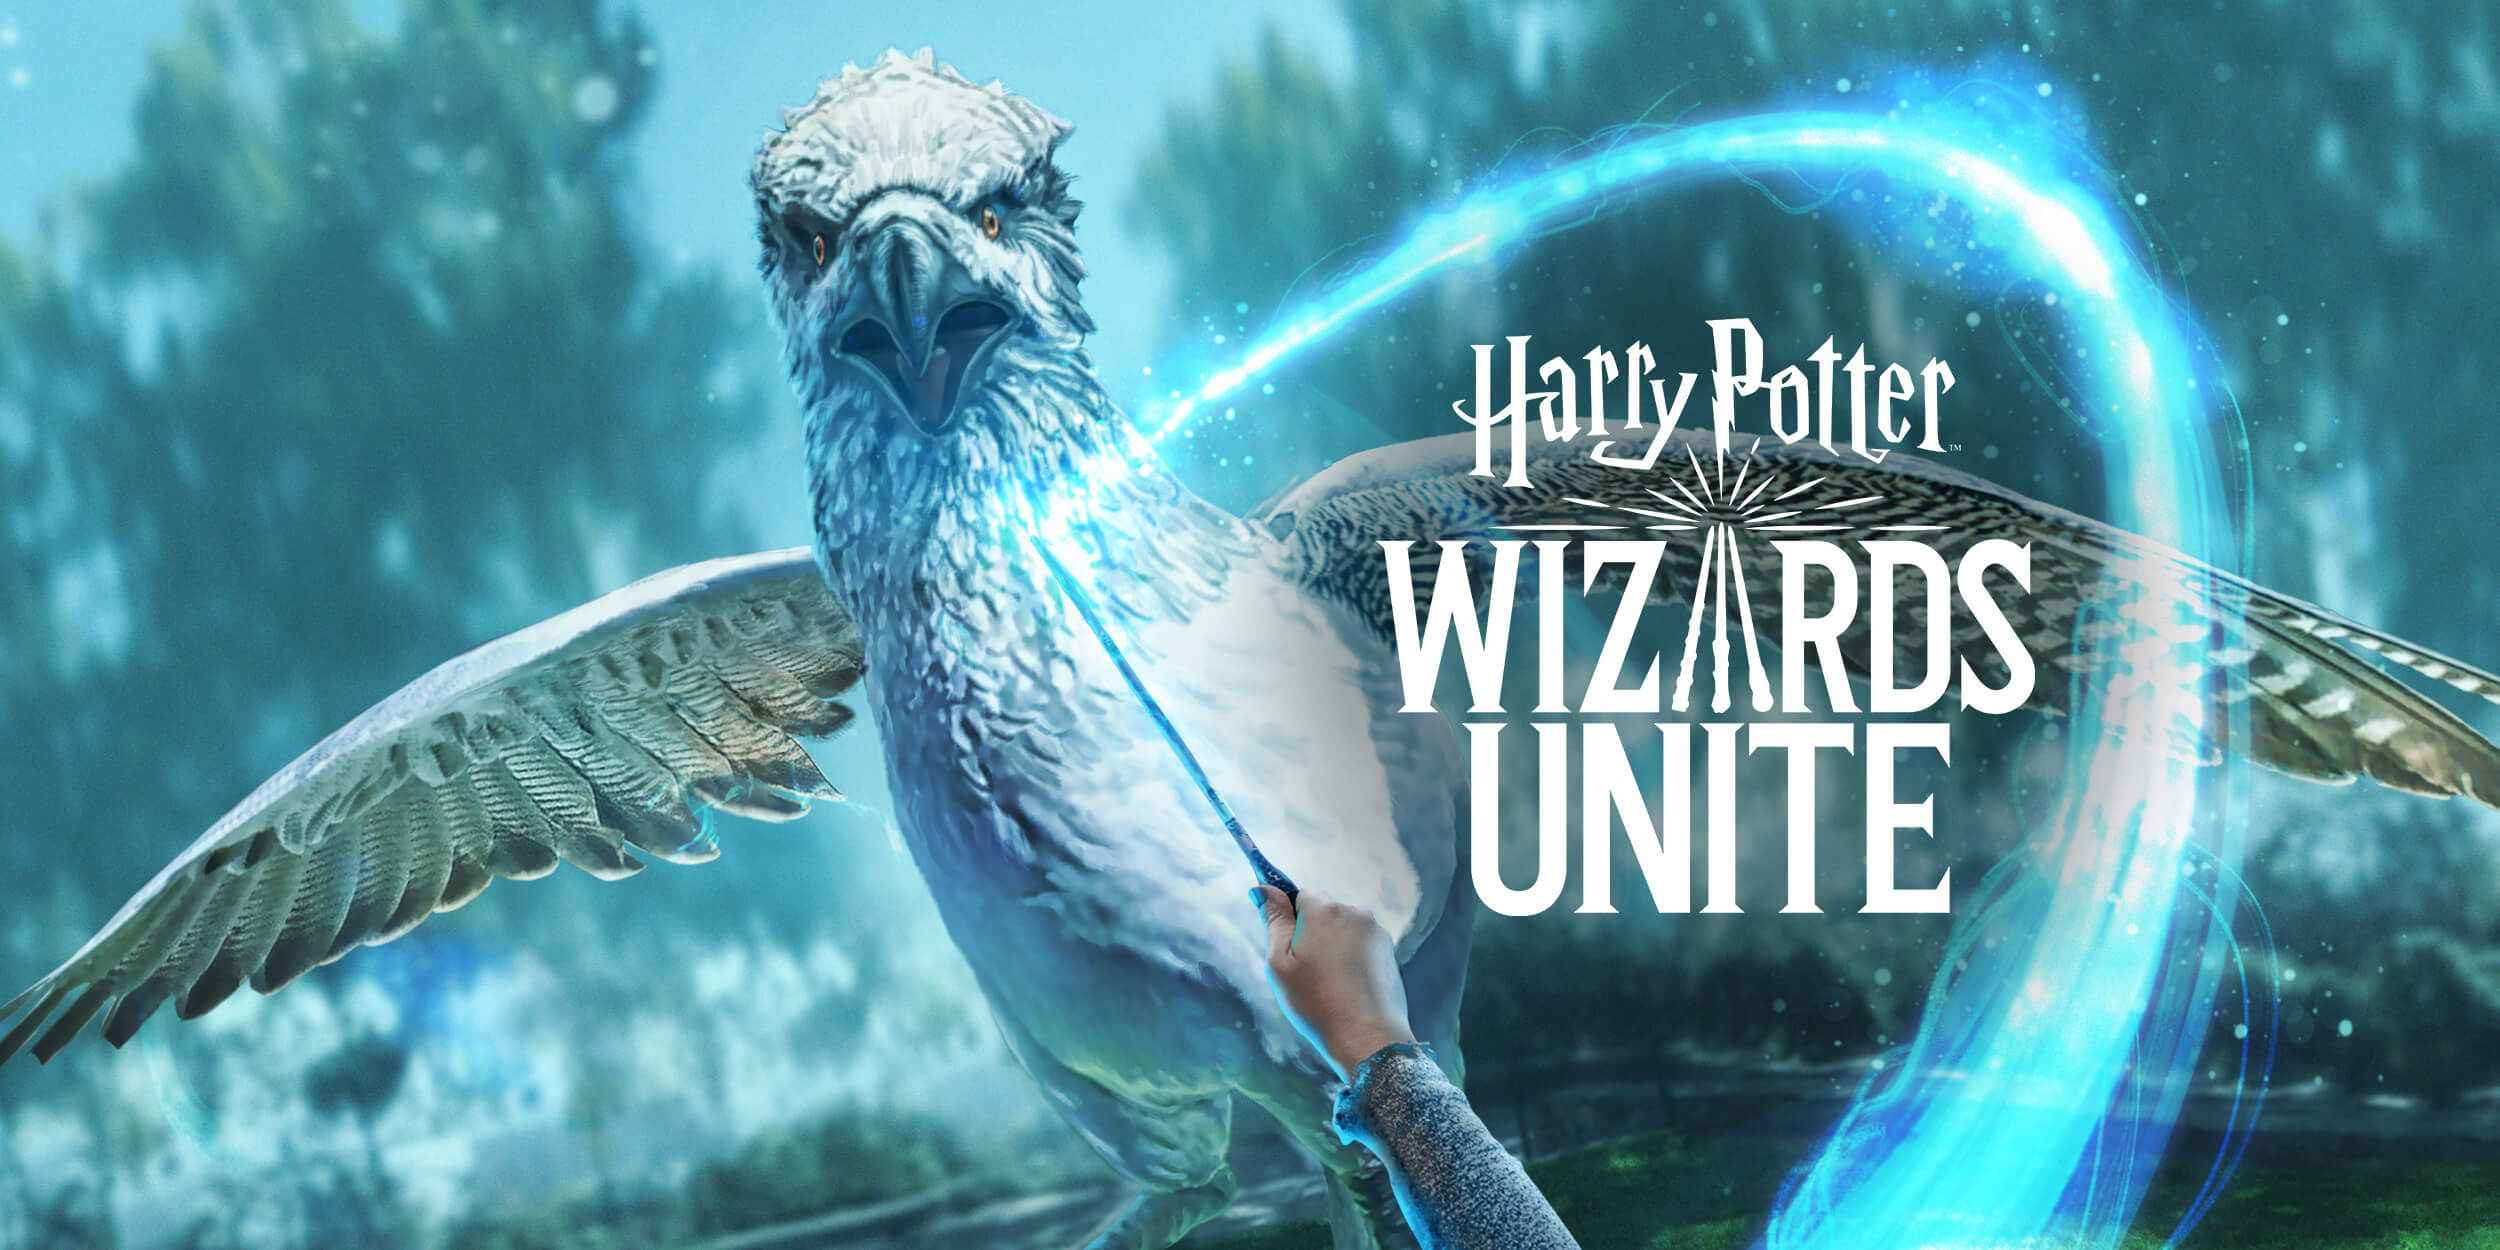 Calling All Wizards A First Look At Harry Potter Wizards Unite Harry Potter Wizards Unite Harry Potter Wizard Harry Potter Games Niantic